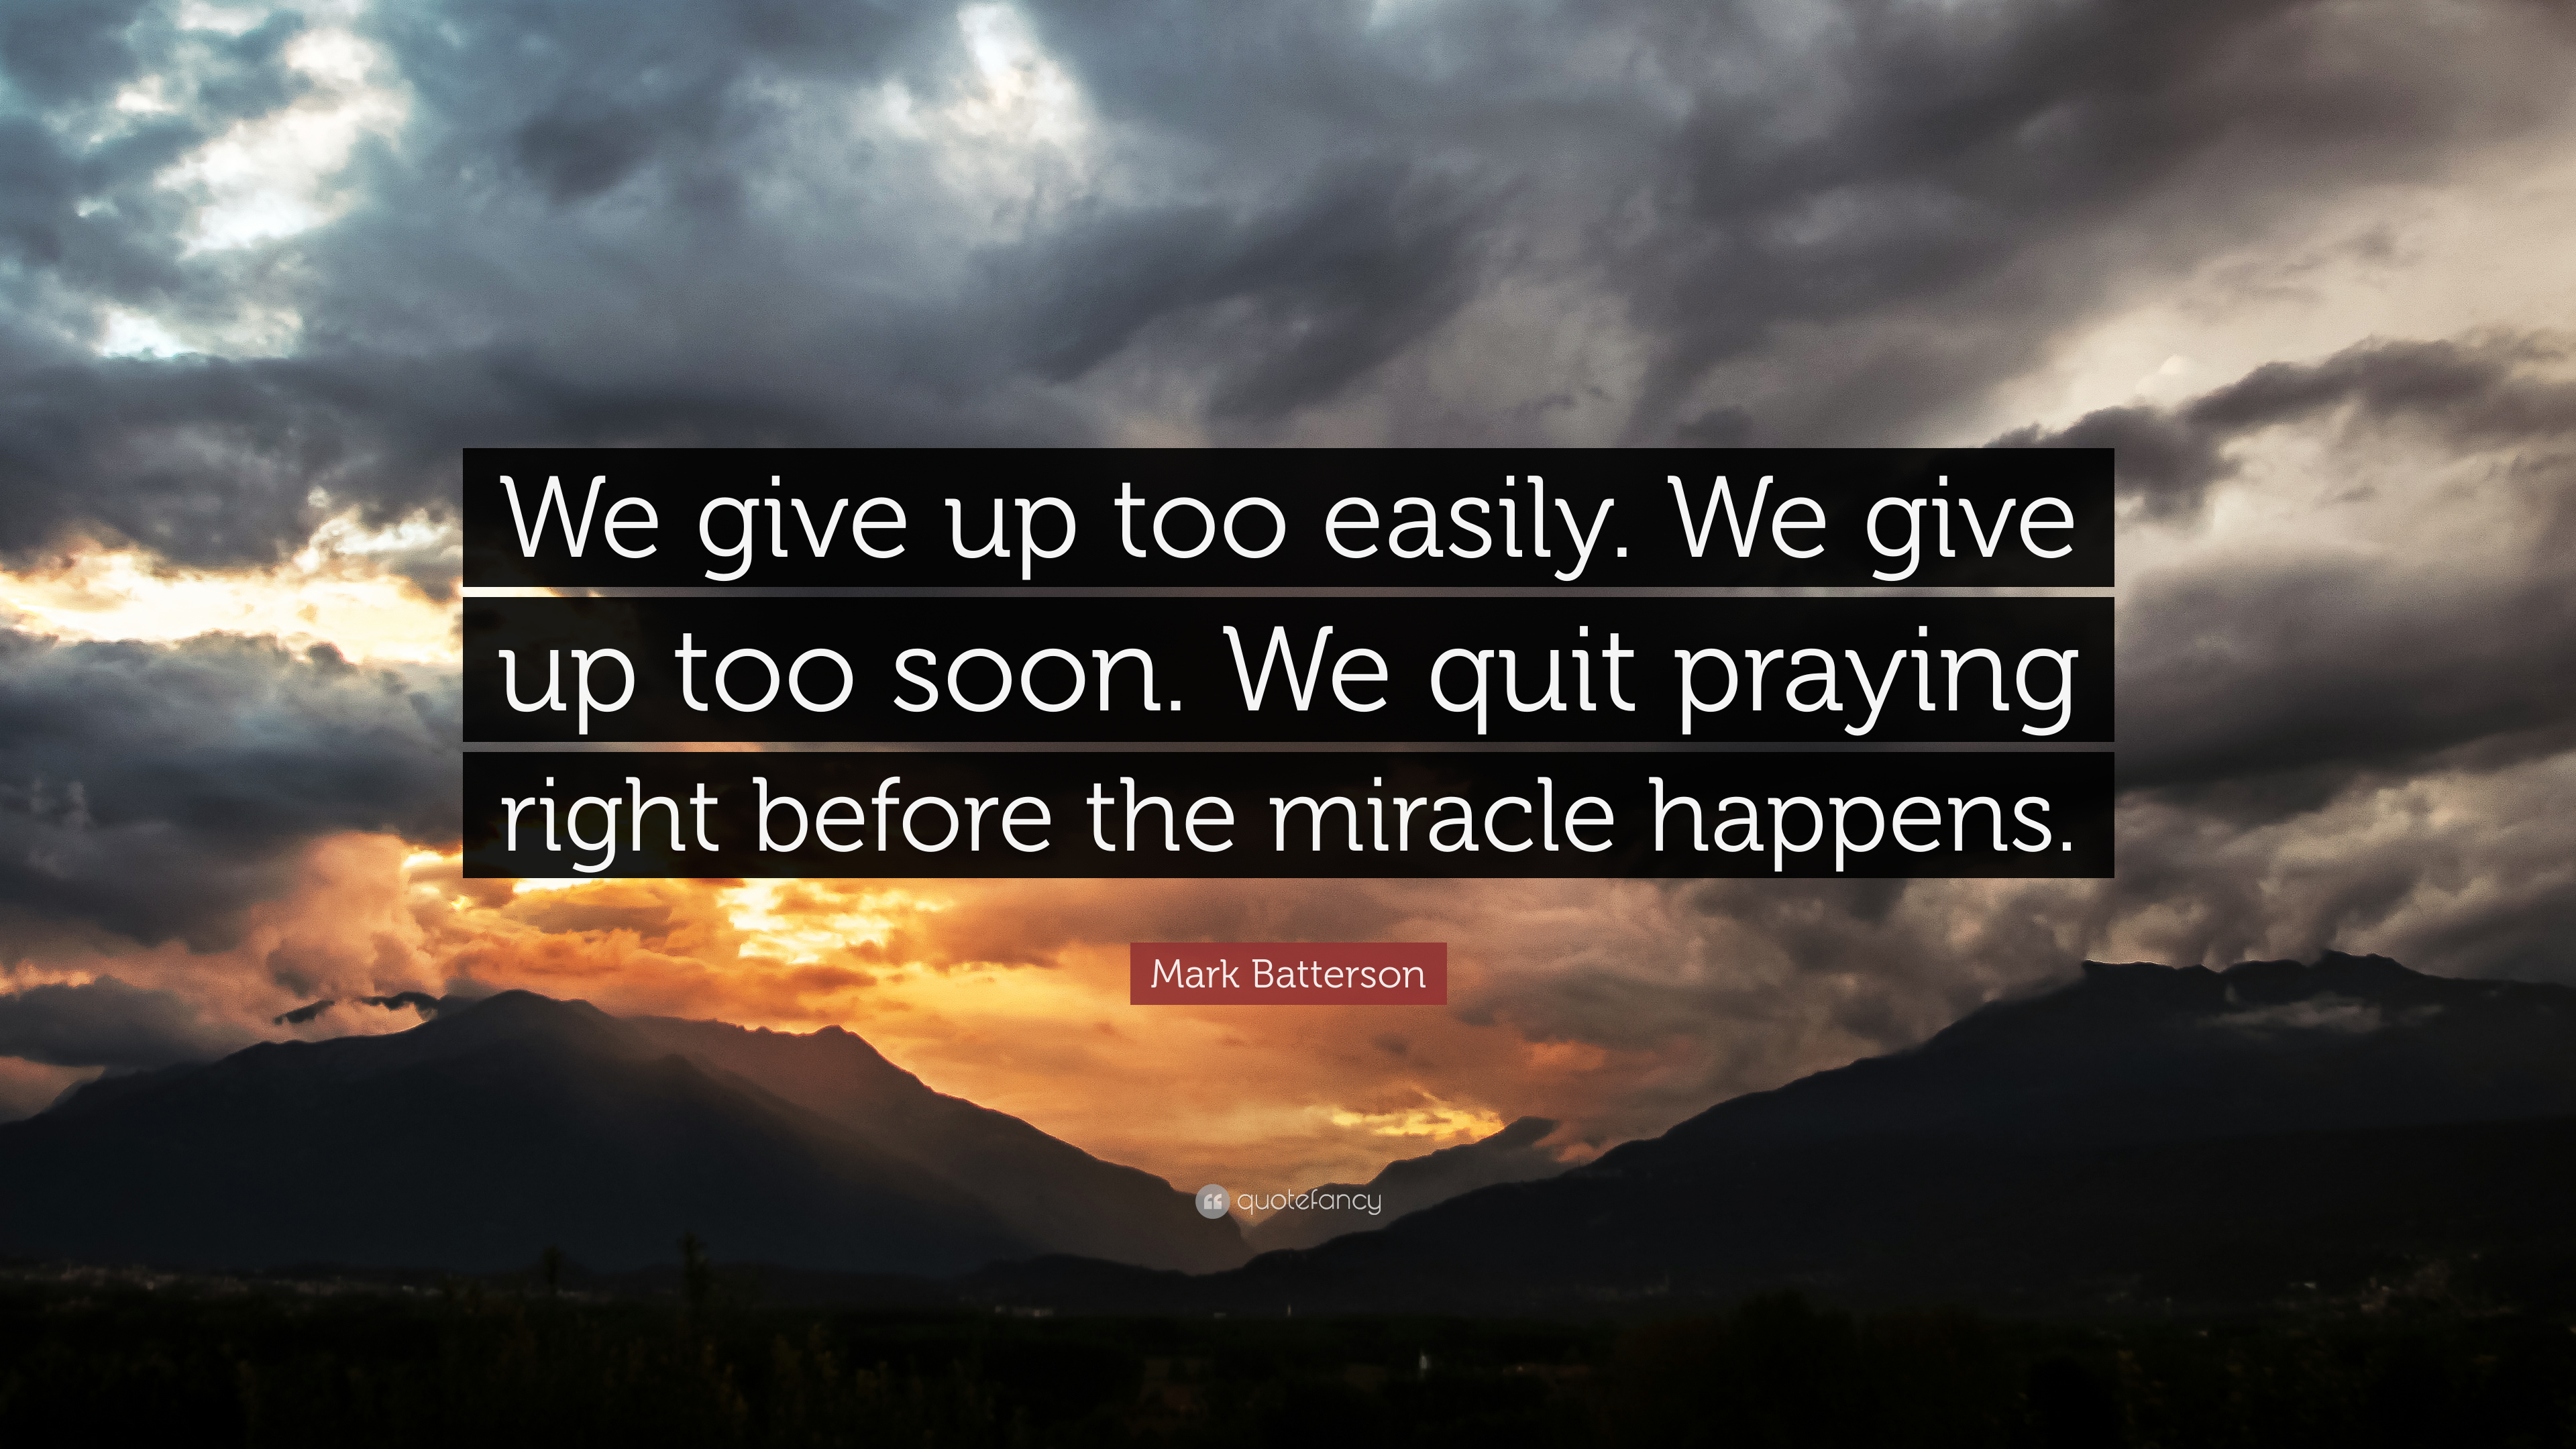 Mark Batterson Quotes (100 Wallpapers)